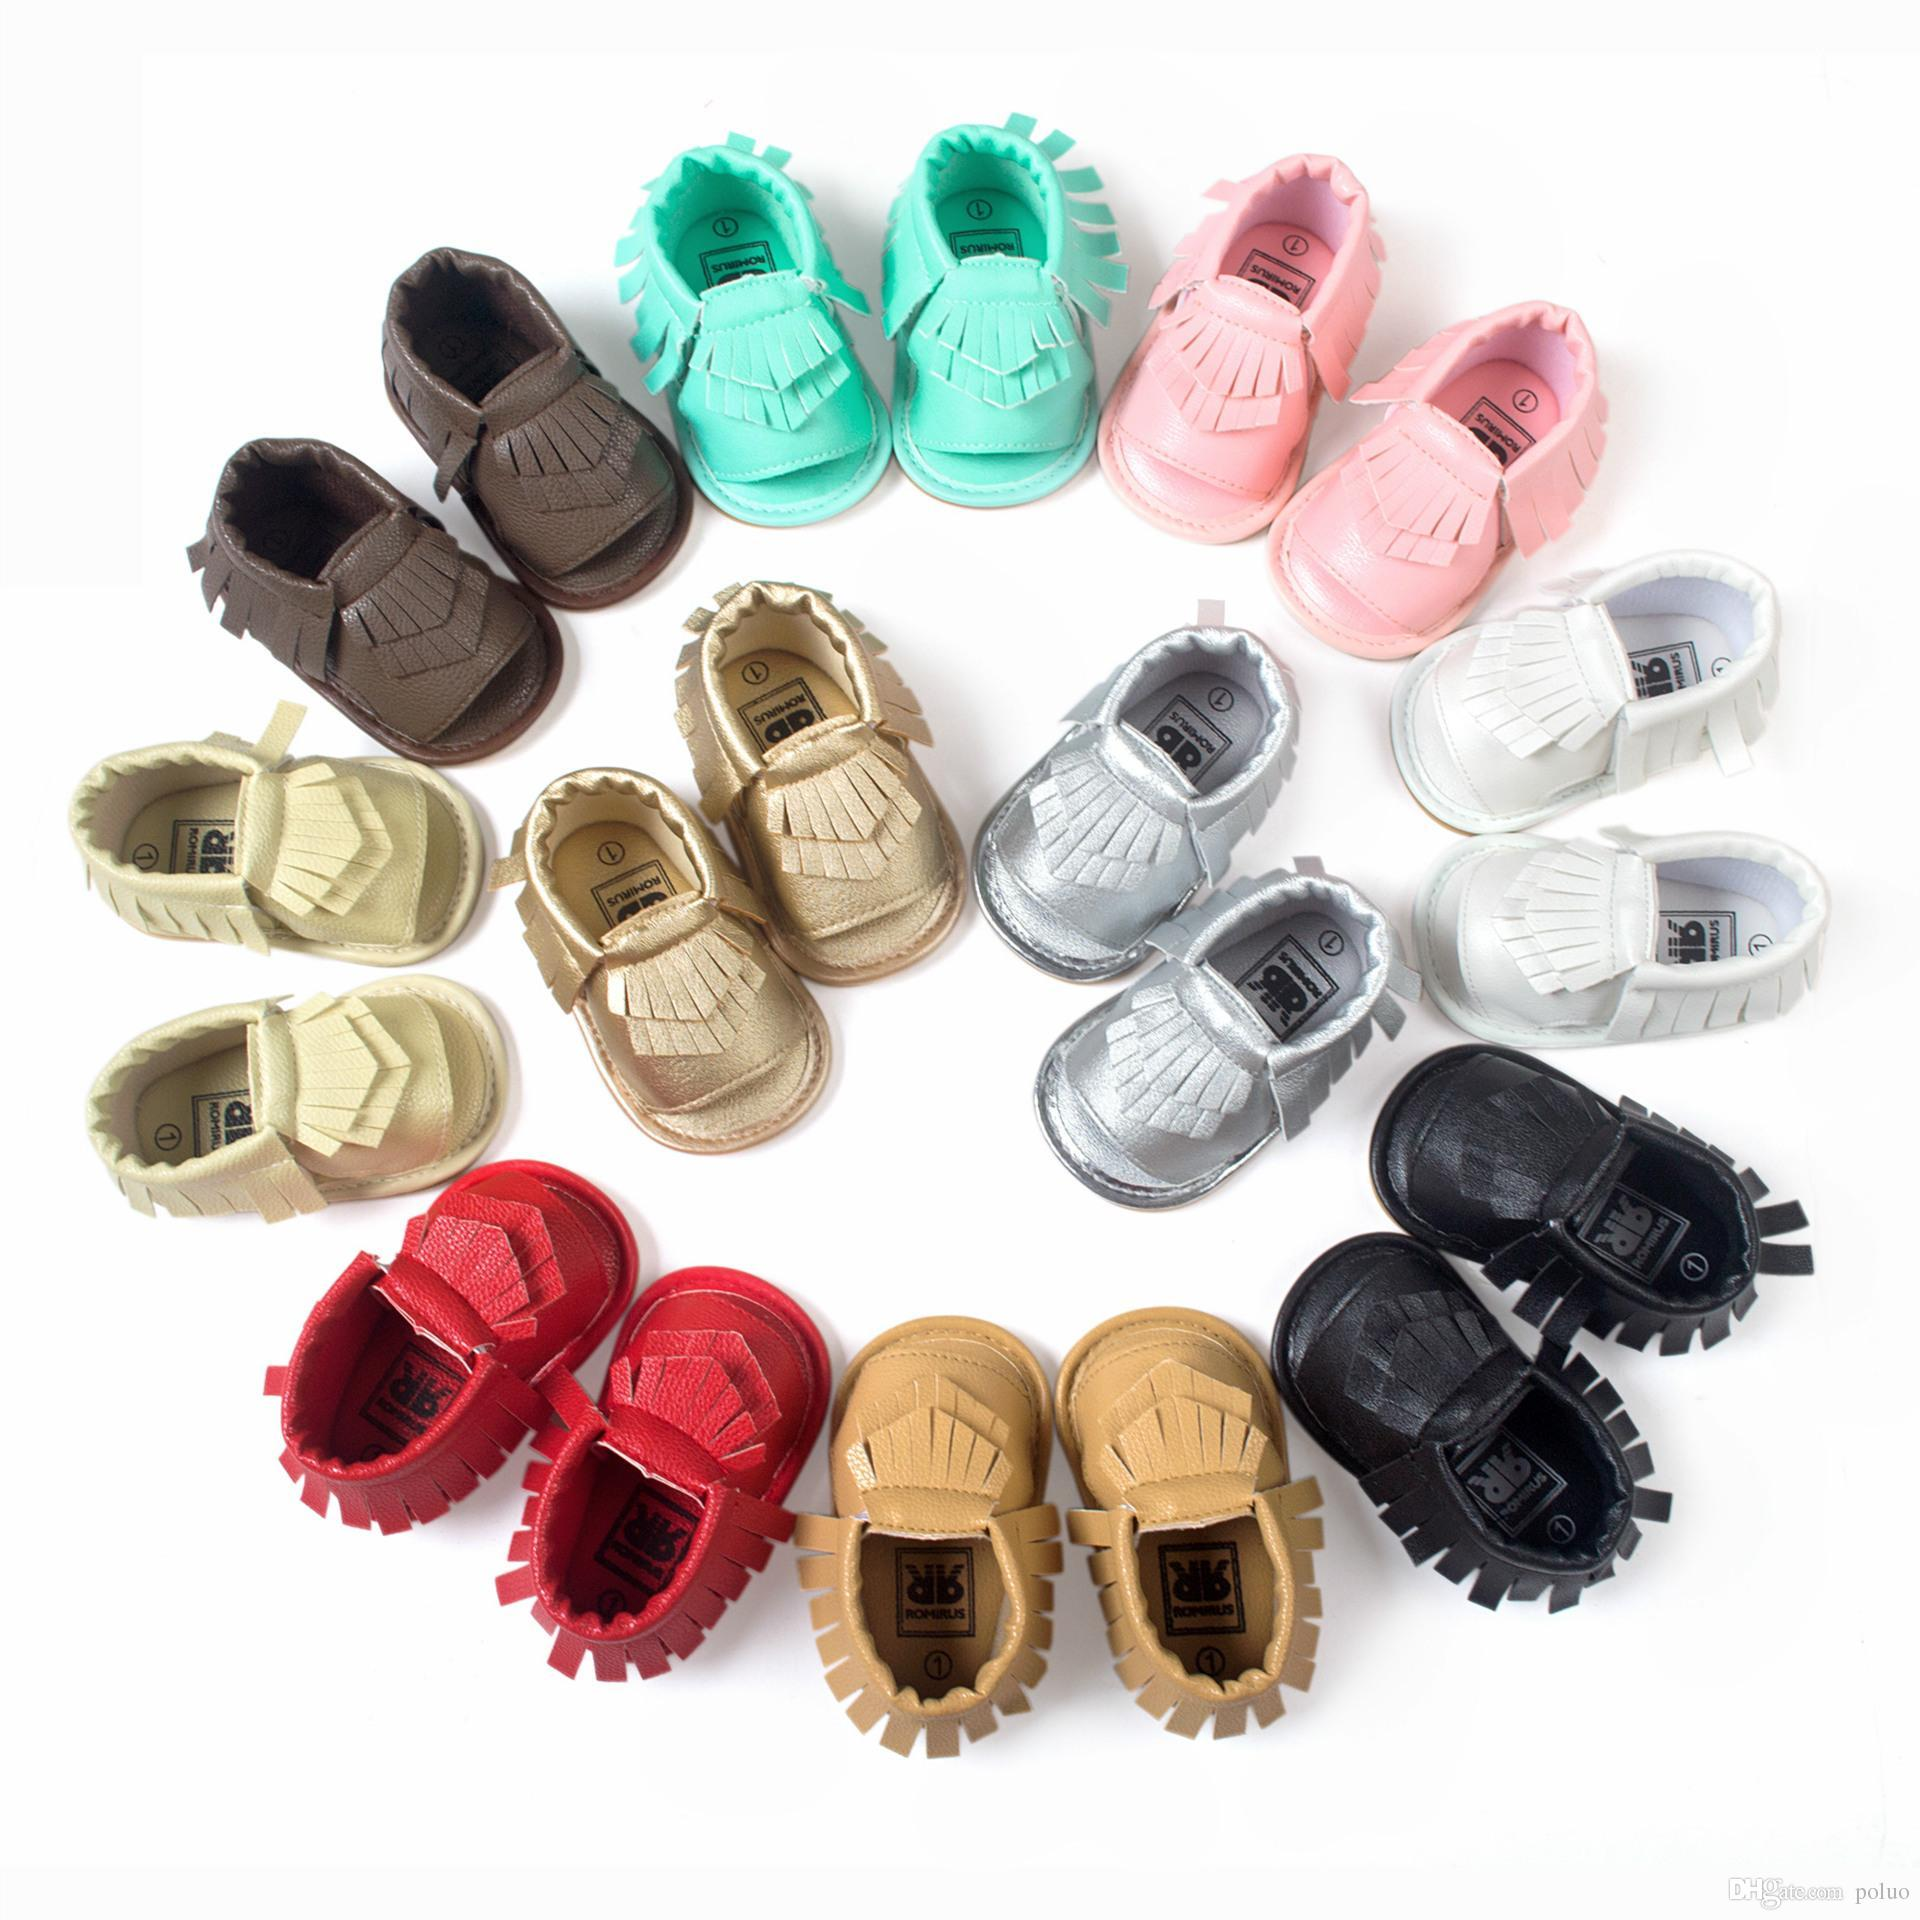 f7c89c617c57 2019 Wholesale Summer Style 2017 New Designer Baby Moccasins For Newborn  Boy Girl Fashion Fringe Boots Rubber Sole Unisex Leather Baby Shoes From  Poluo